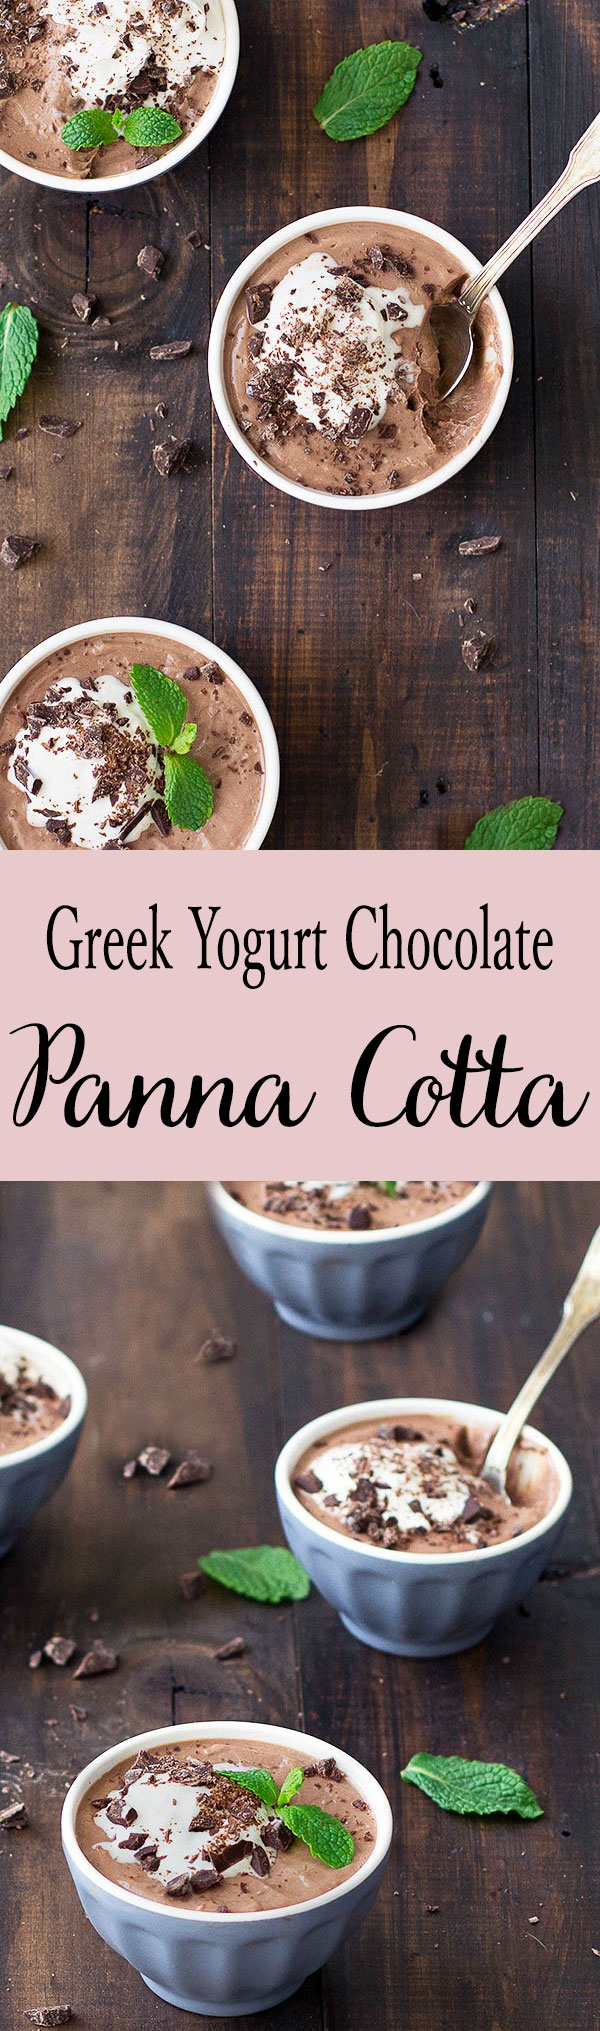 Greek Yogurt Chocolate Panna Cotta is silky smooth, rich and delicious! This dessert has only 205 calories per serving and it's packed with protein!